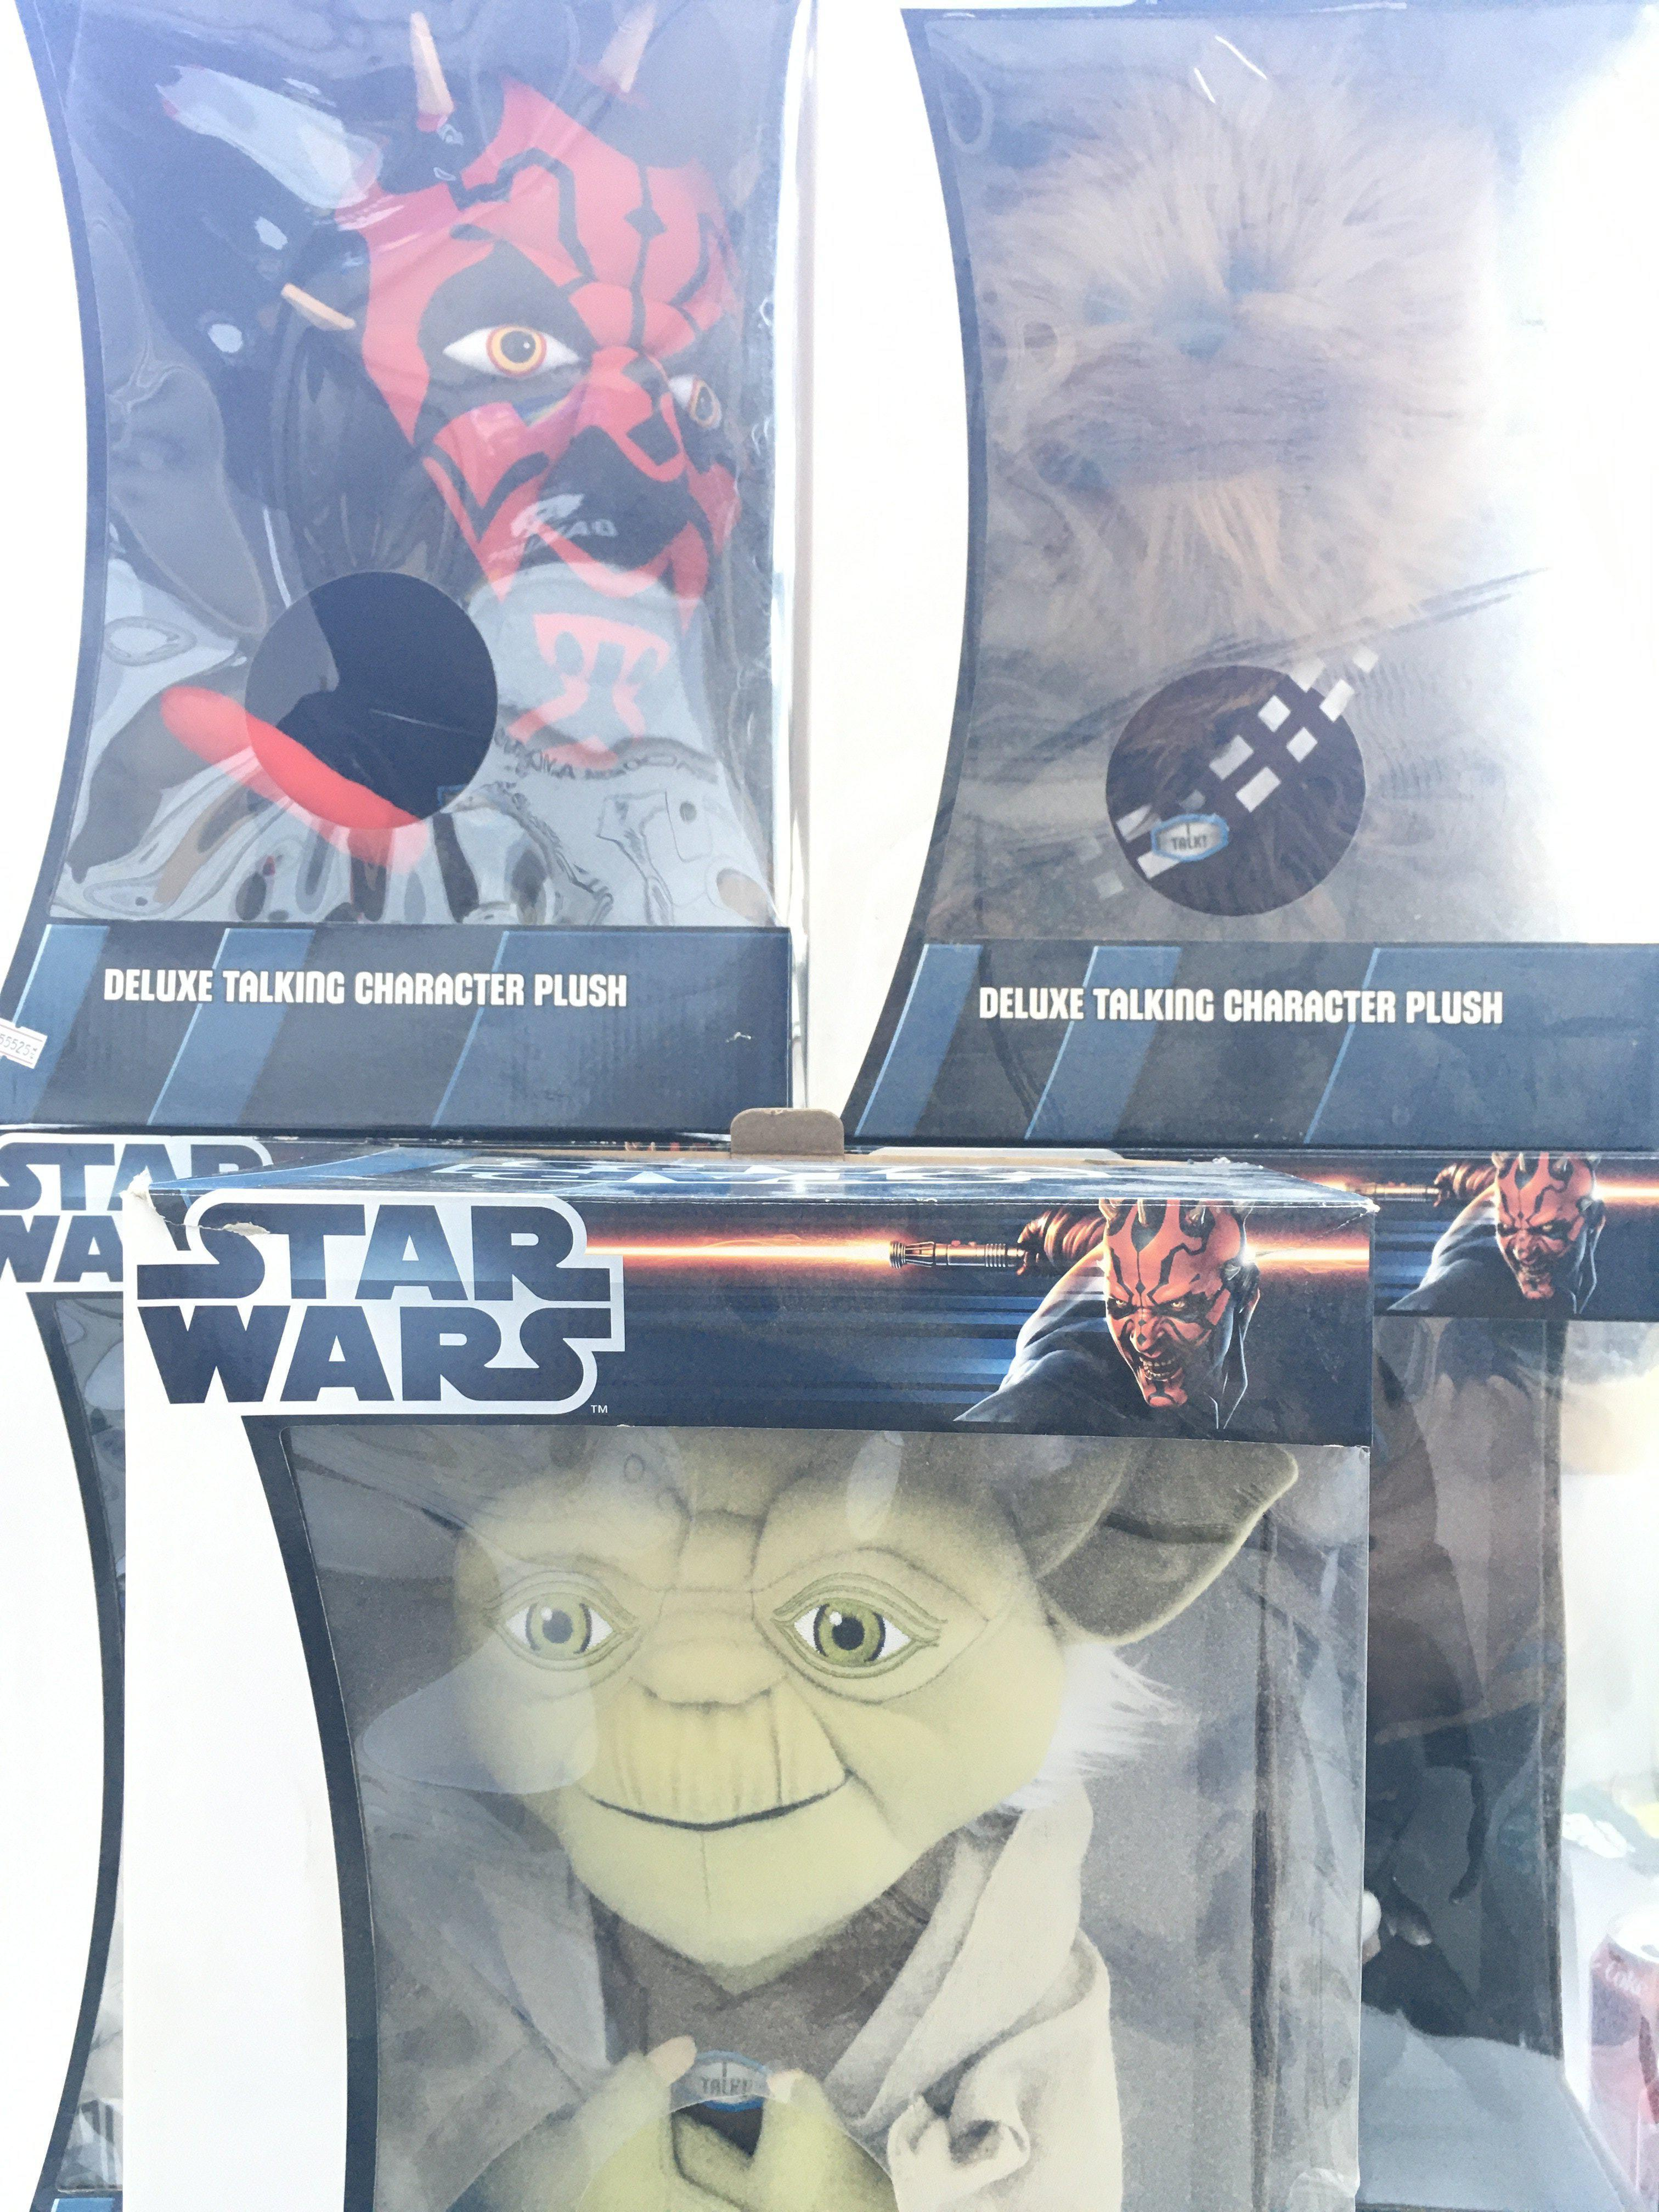 5 X Star Wars Deluxe Talking Character Plush. Incl